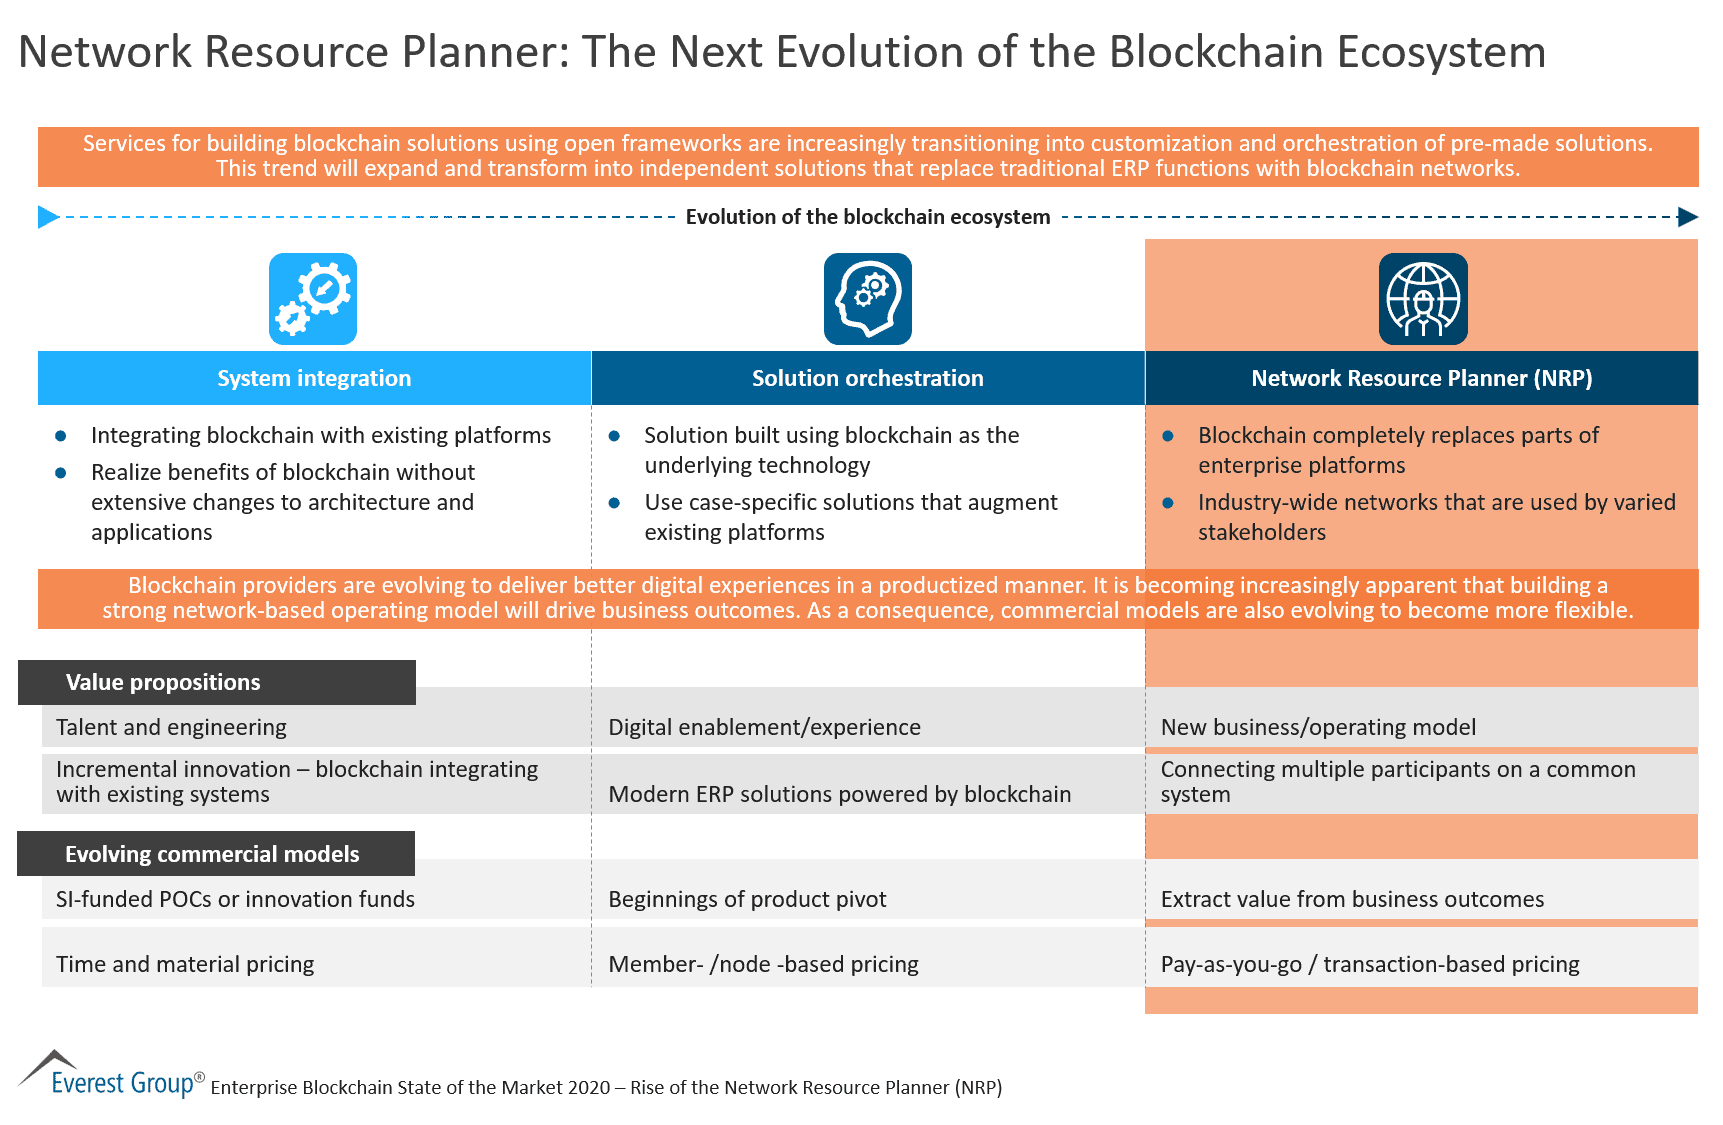 Network Resource Planner - The Next Evolution of the Blockchain Ecosystem